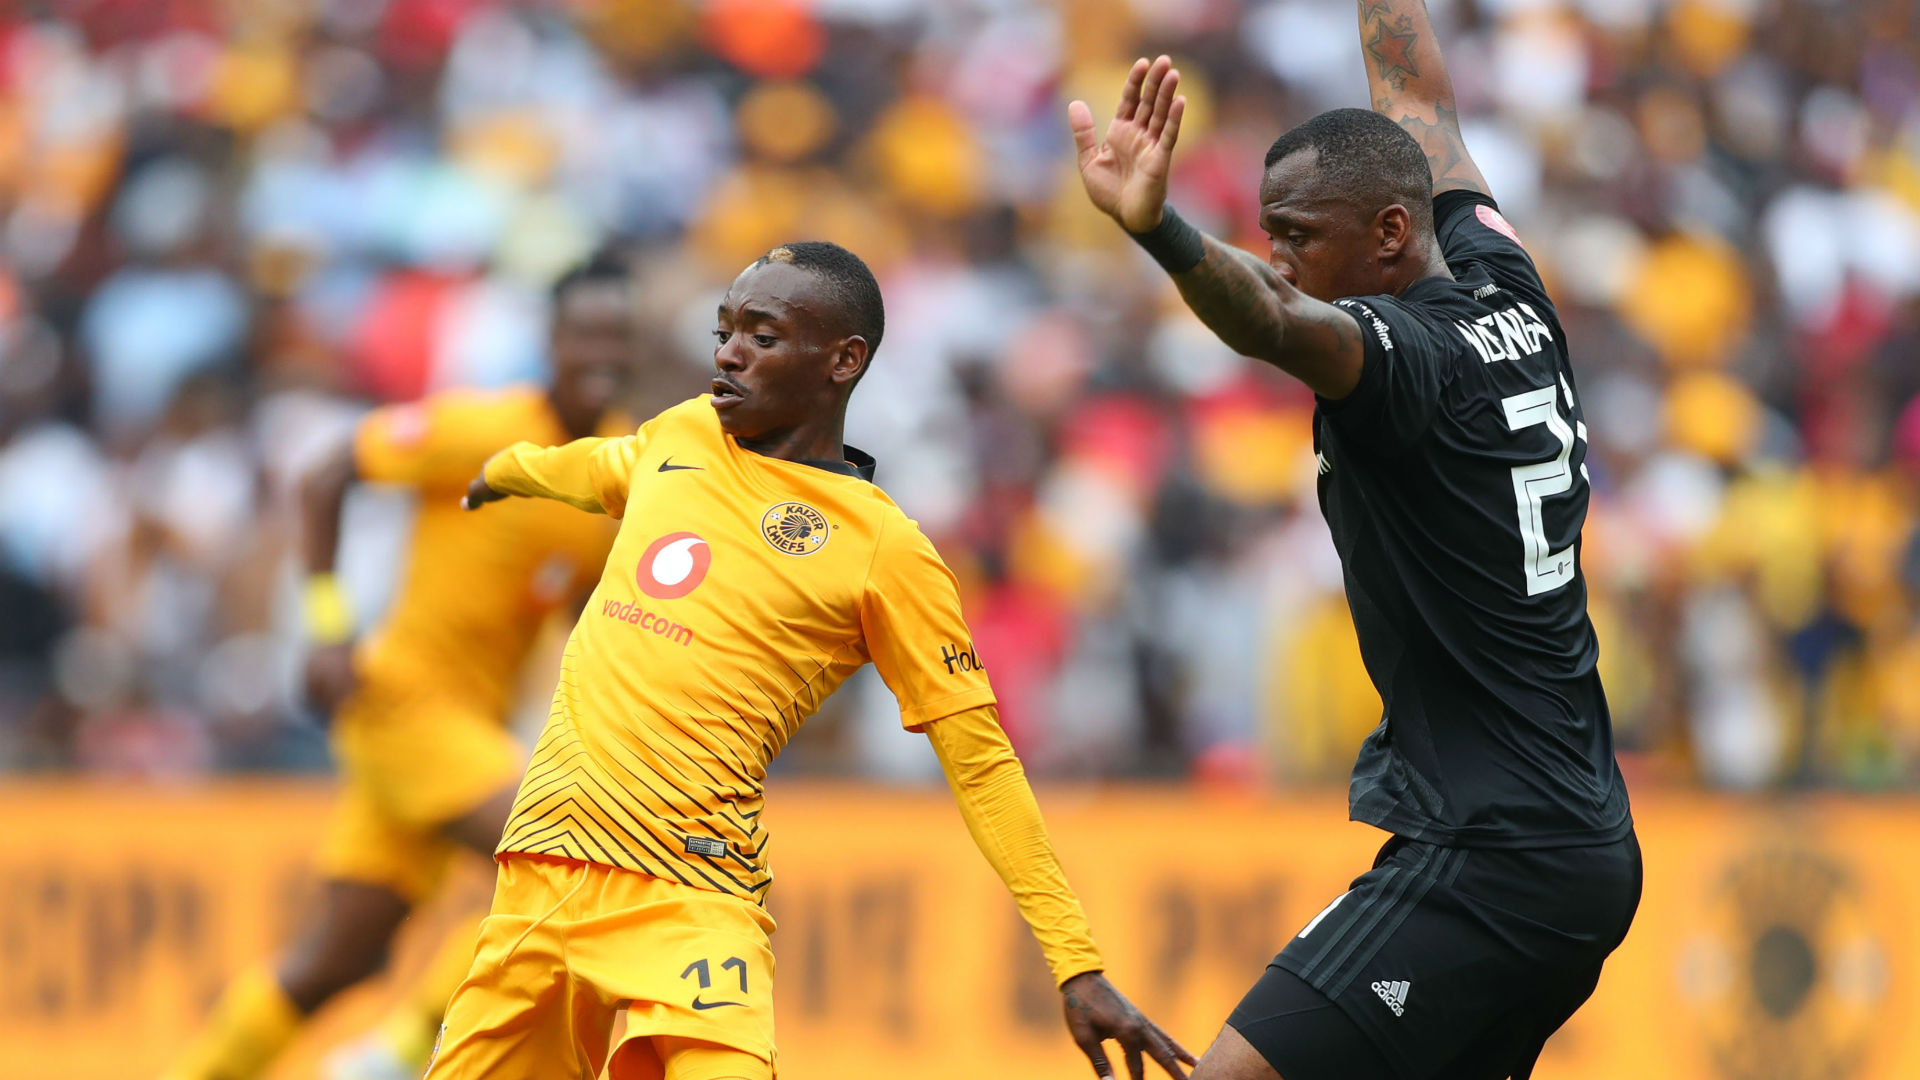 Khama Billiat, Kaizer Chiefs & Alfred Ndengane, Orlando Pirates, February 2019